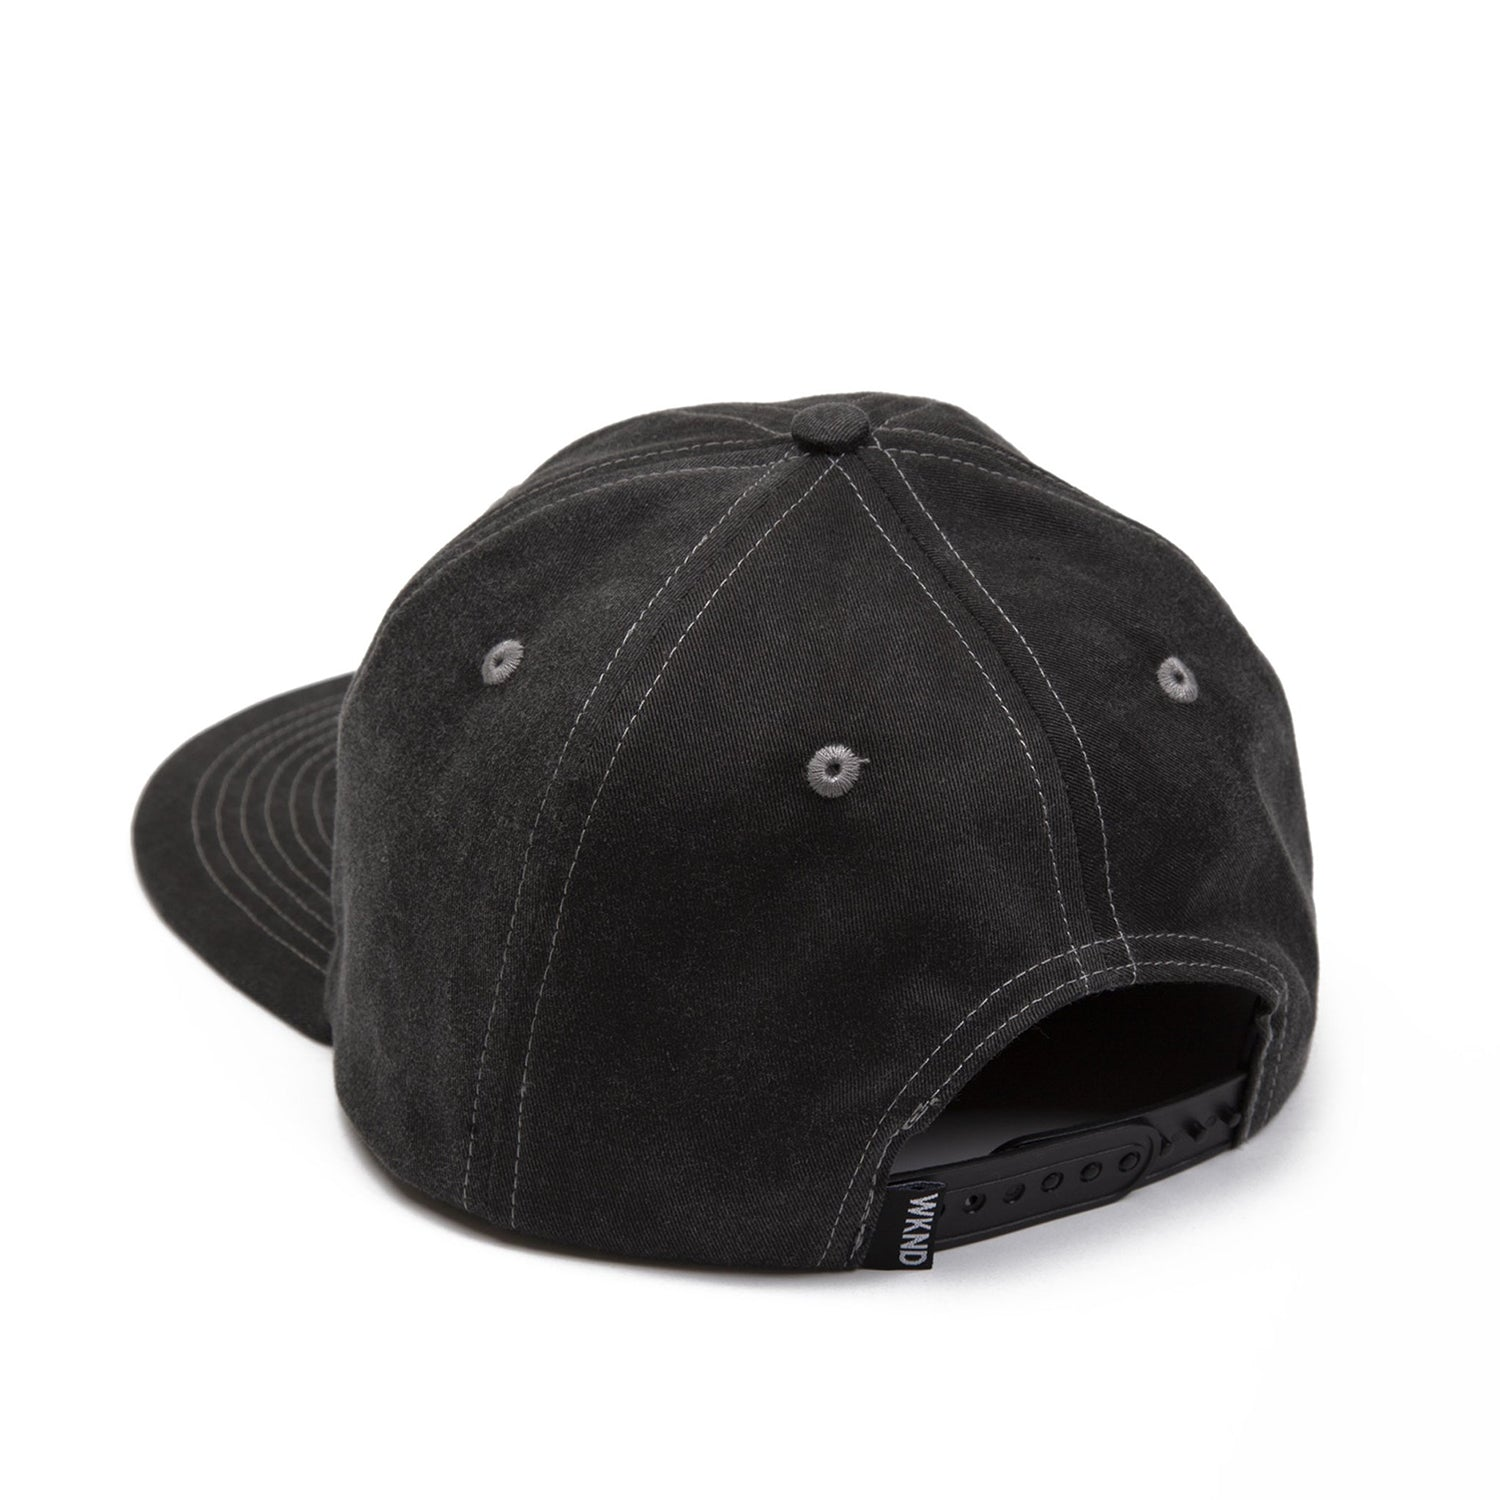 WKND Hat Lunch Money 6 Panel Black